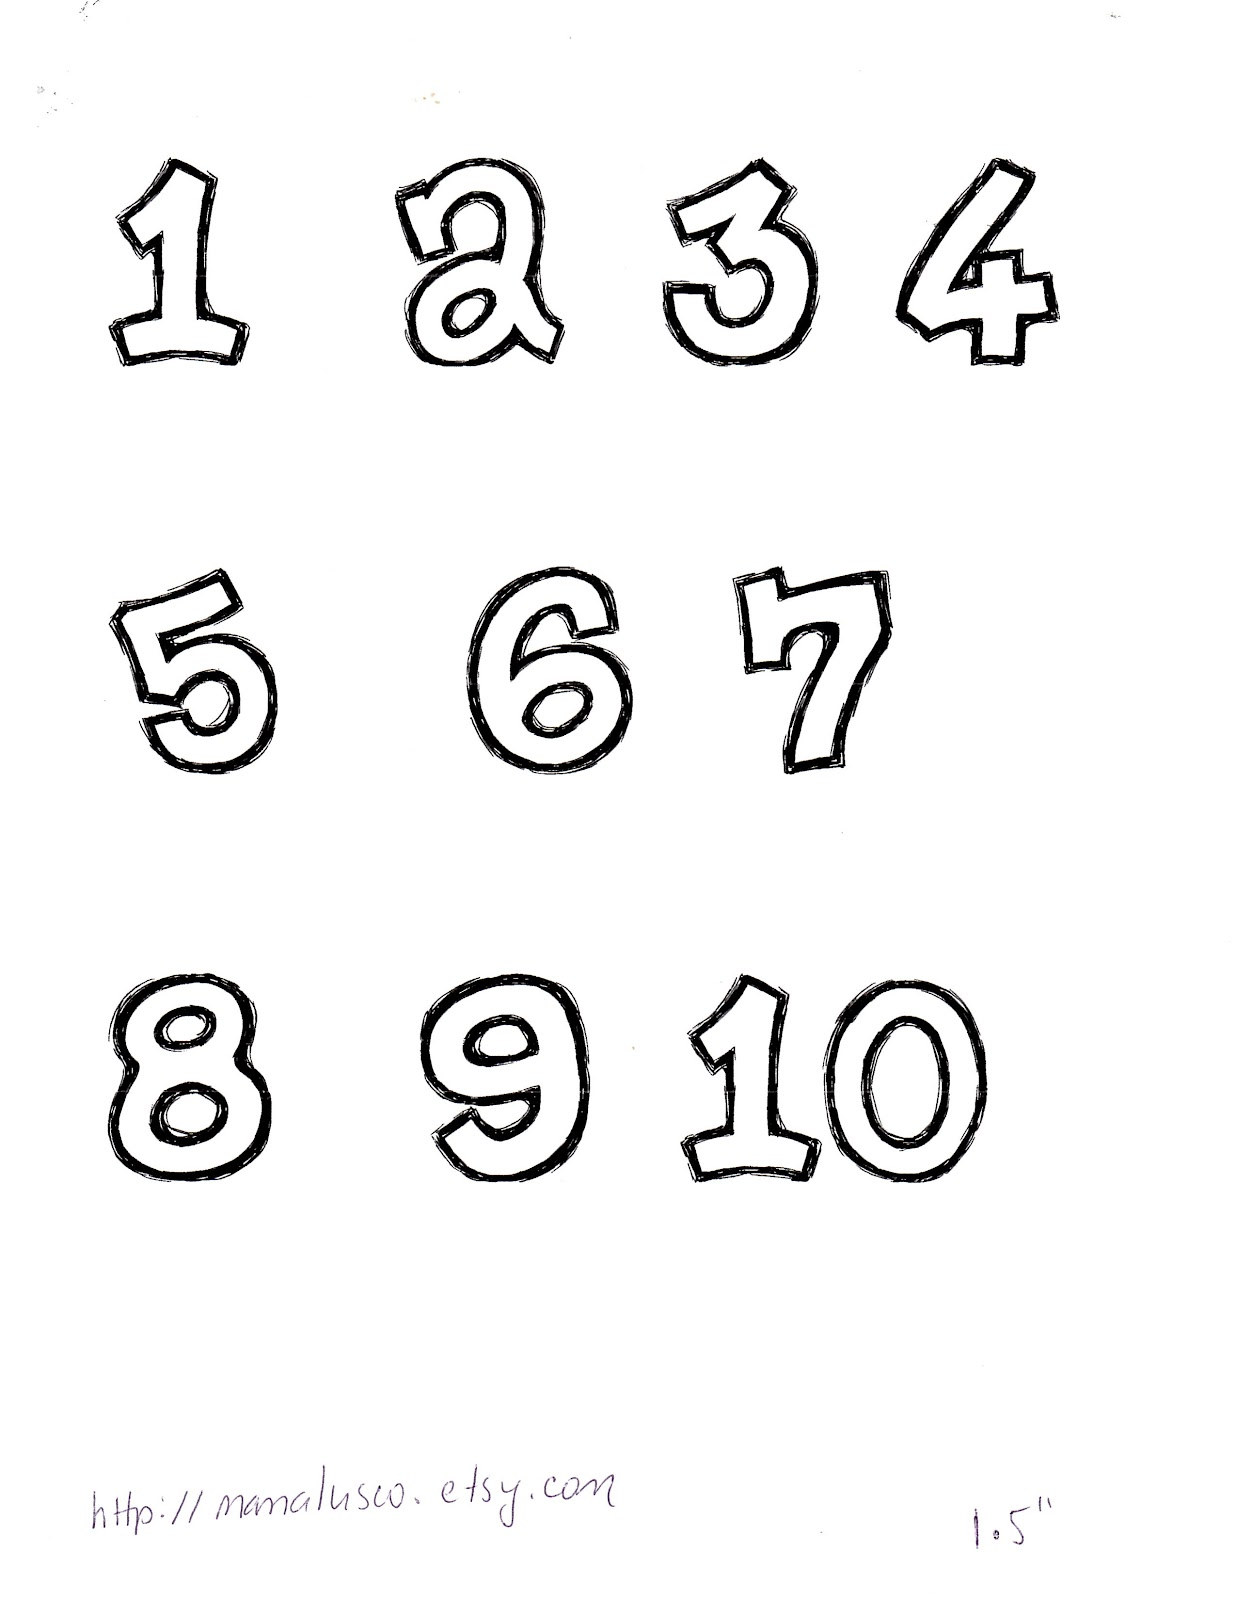 7 best images of free printable number templates number for Free number templates to print